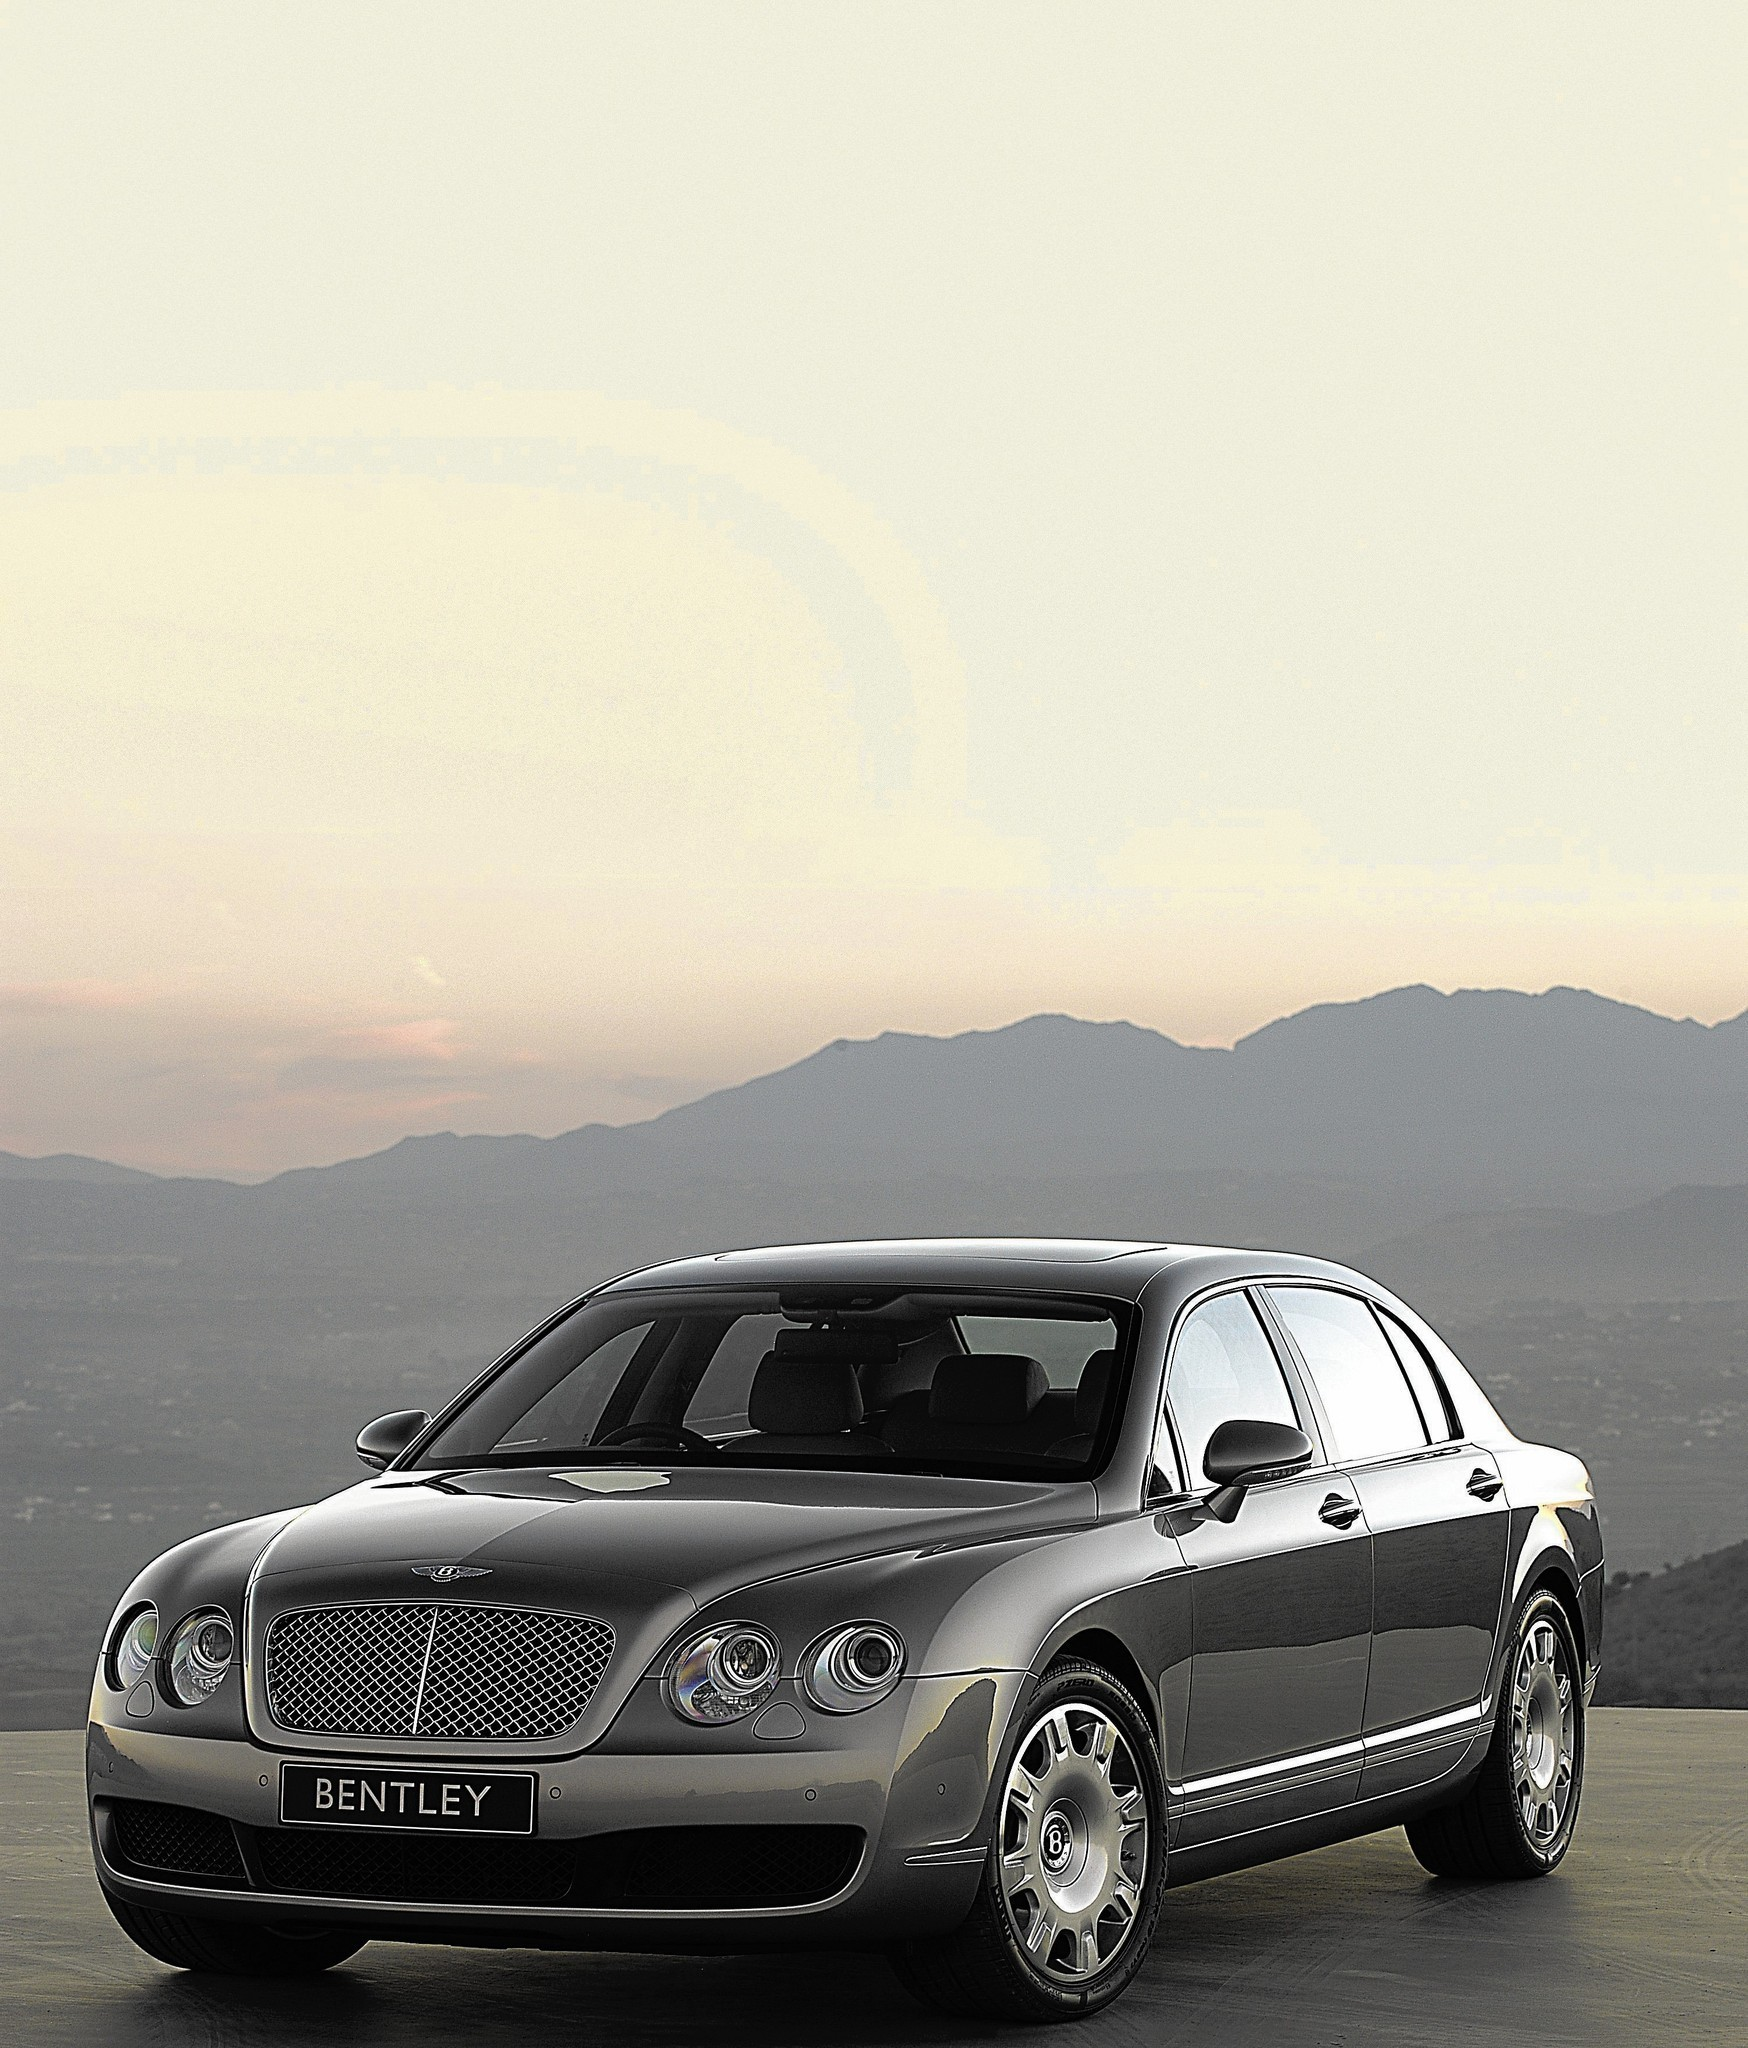 Poor AM Radio Reception Grounds Bentley Flying Spur Owner